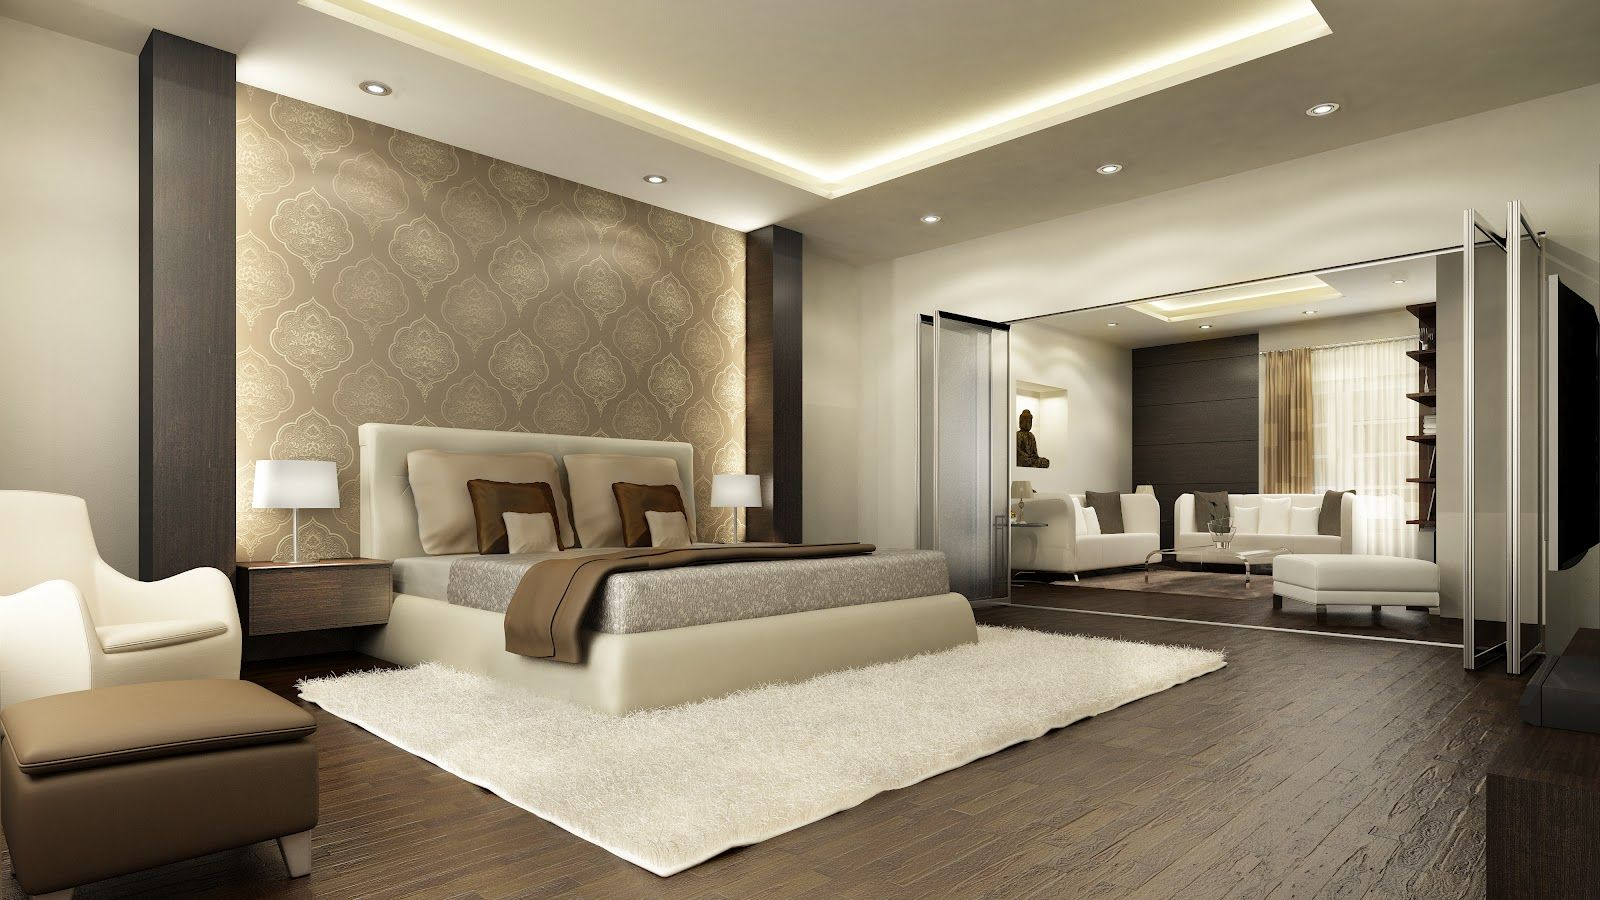 We Will Increasingly Resemble The Luxury Of A Bed Room With